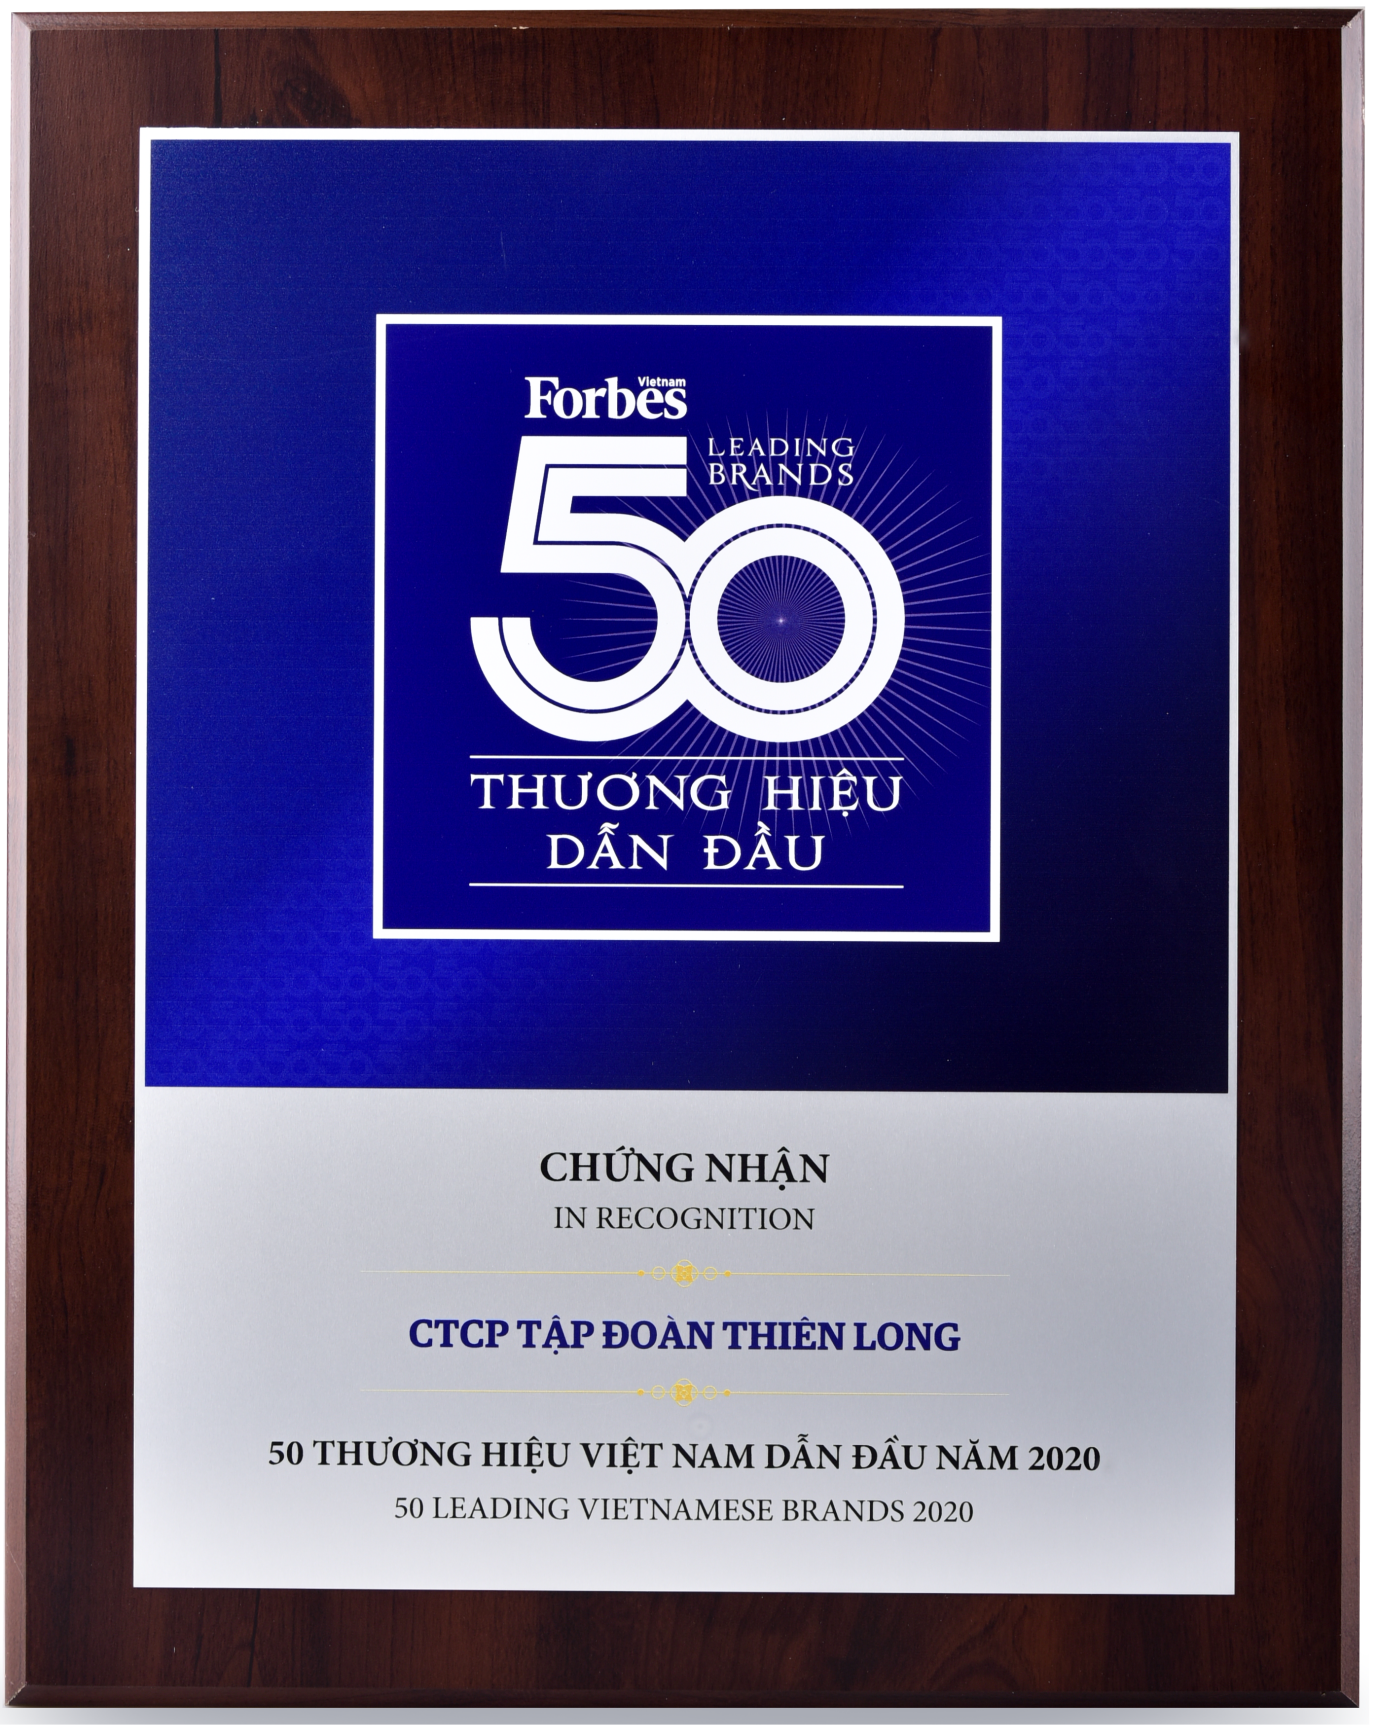 thien long group enters top 50 brands vietnam and asias 200 best under a billion list